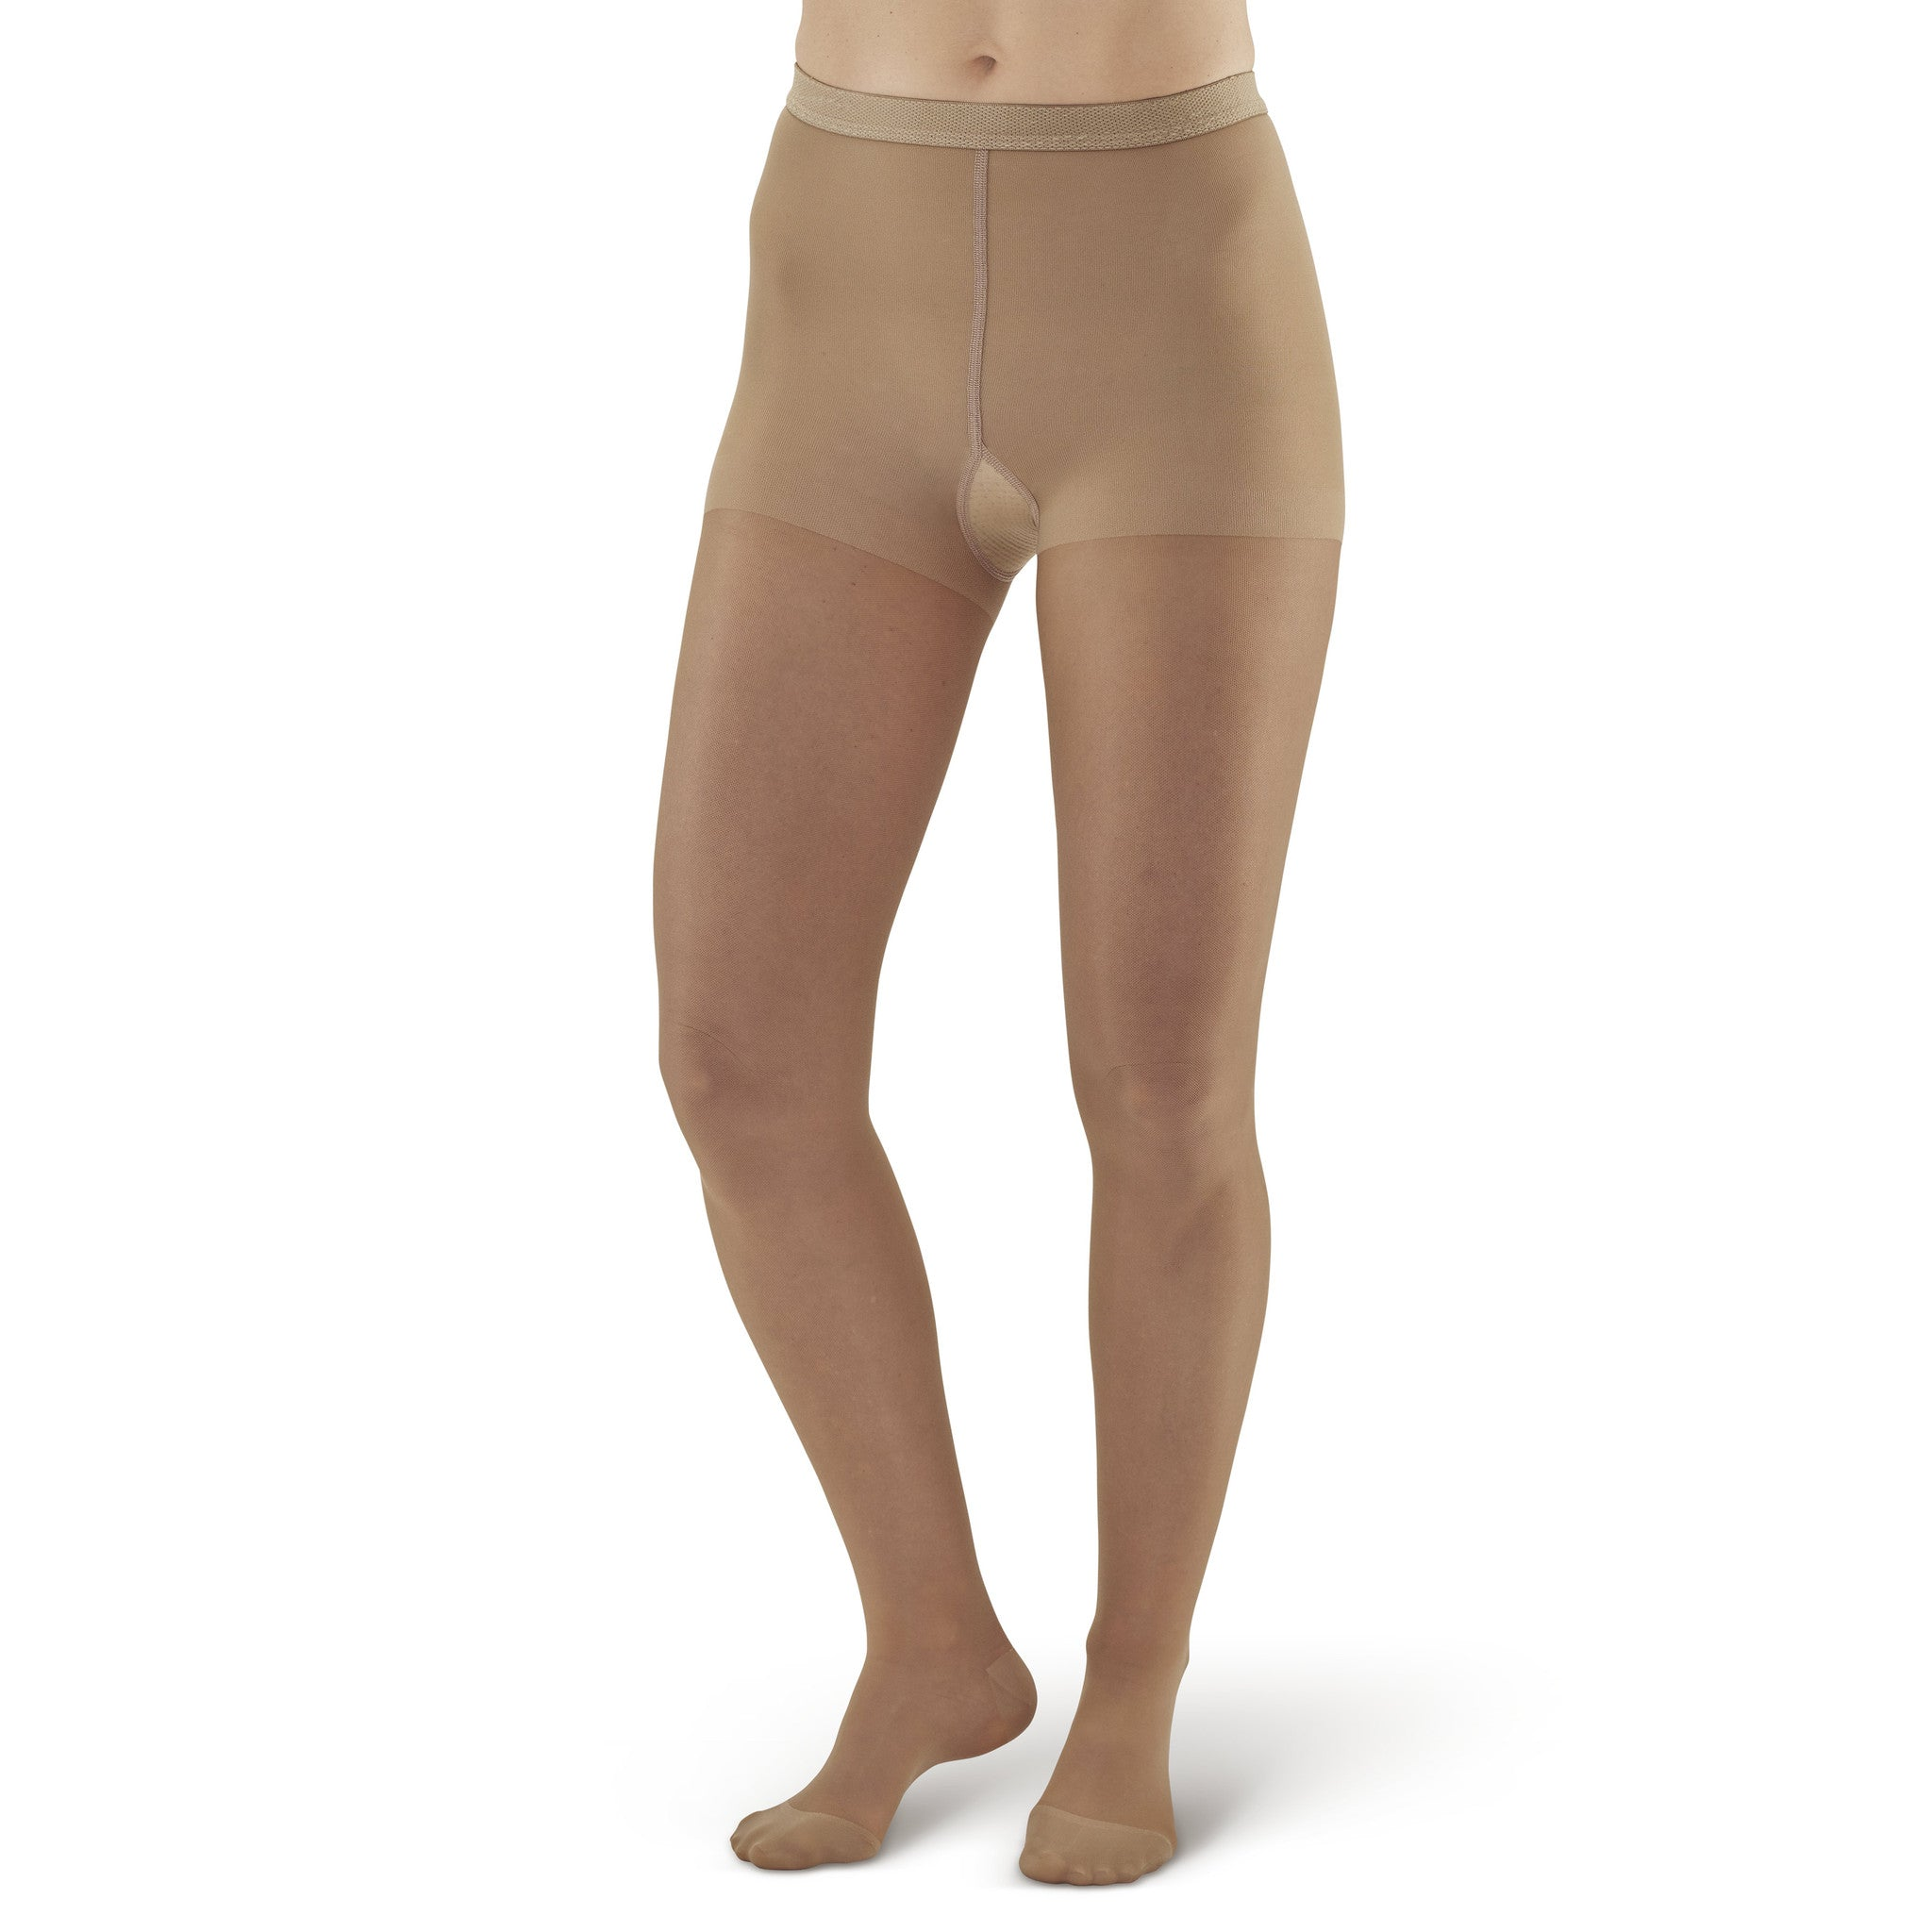 eb02ab085e4a3 ... AW Style 15 Sheer Support Closed Toe Pantyhose - 15-20 mmHg - Beige ...